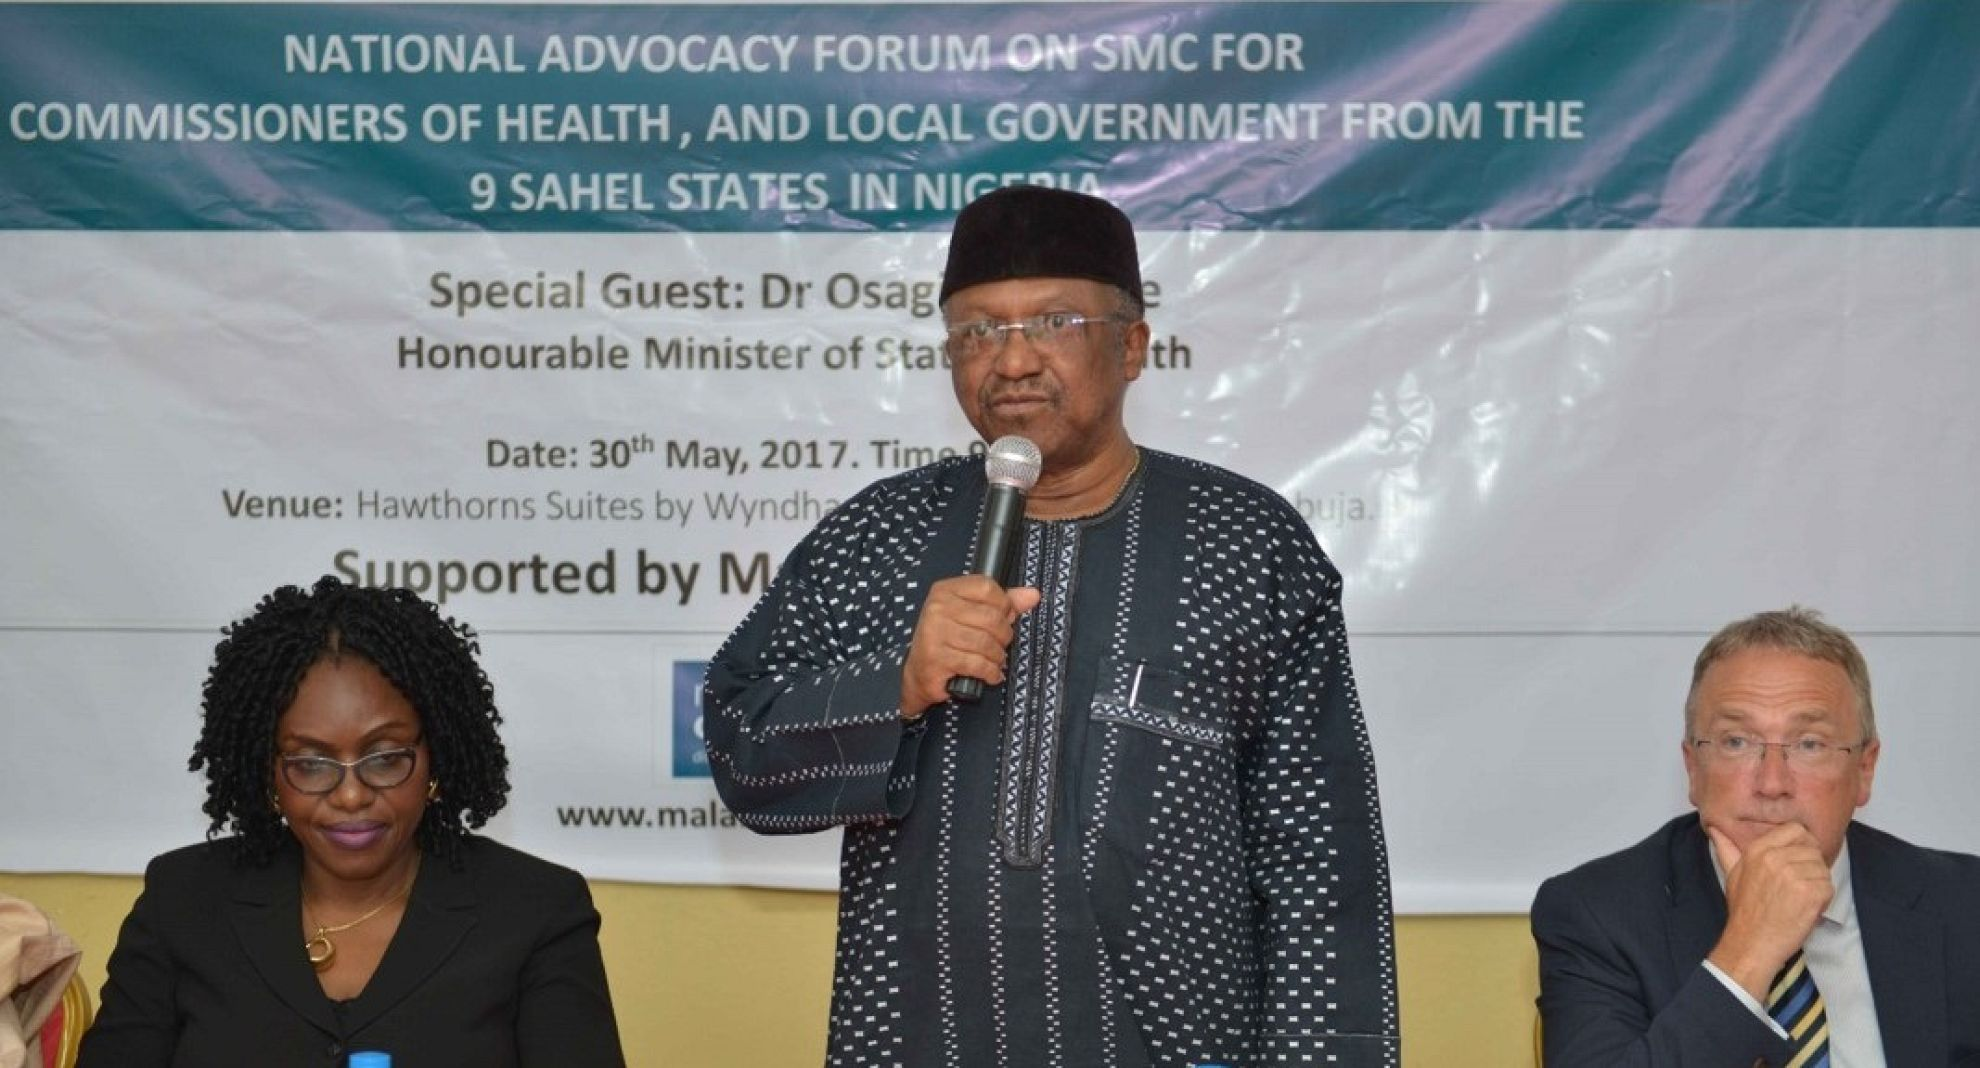 Latest News Nigeria reaffirms its commitment to scale up smc